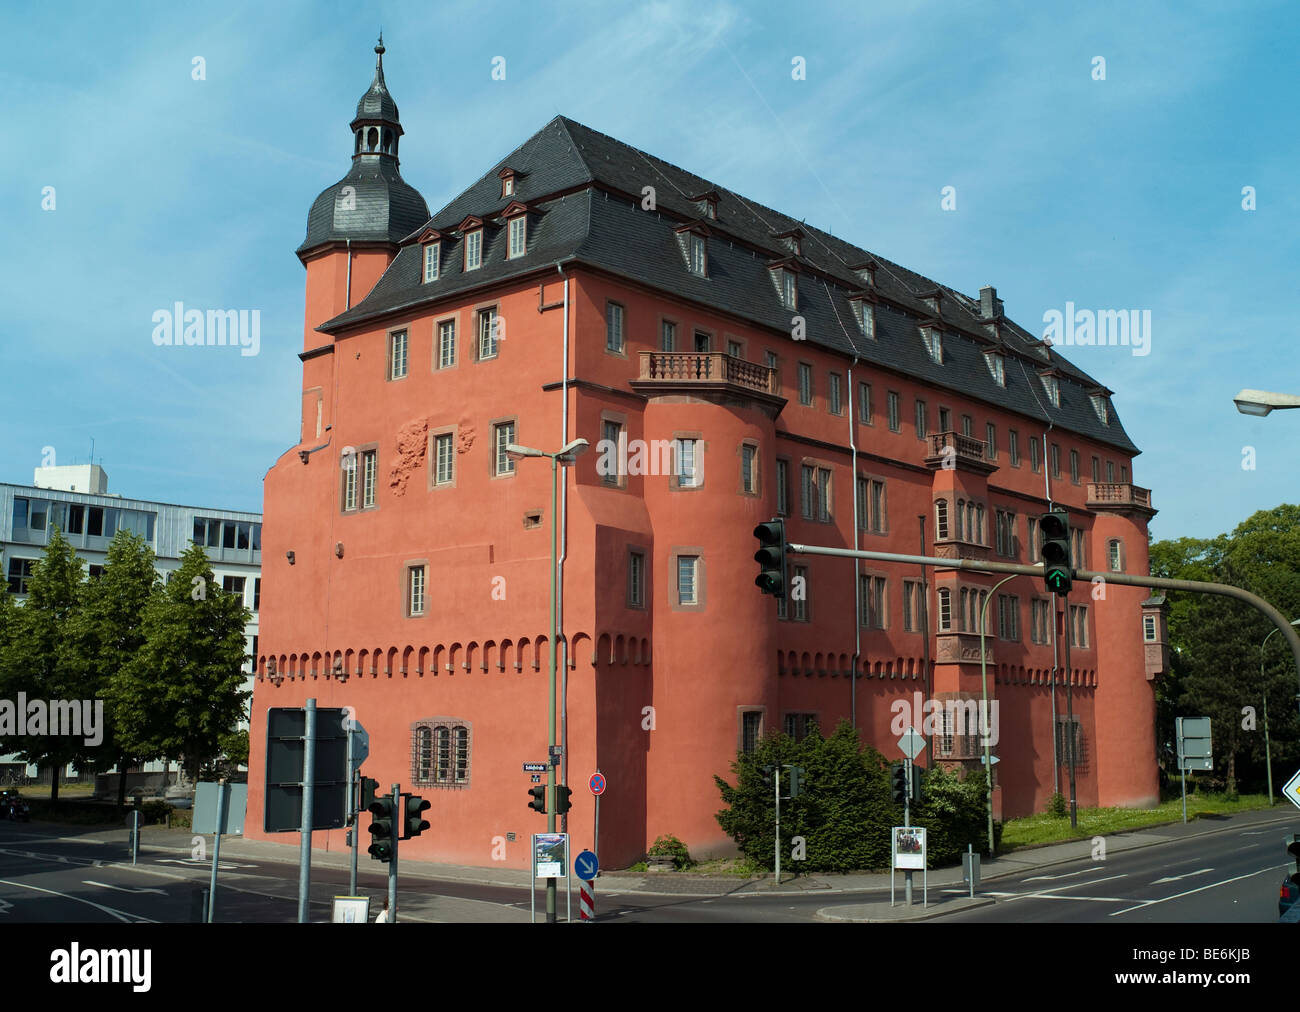 Isenburg Castle, renaissance facade with arcades, part of the campus of the University of Art and Design Offenbach - Stock Image